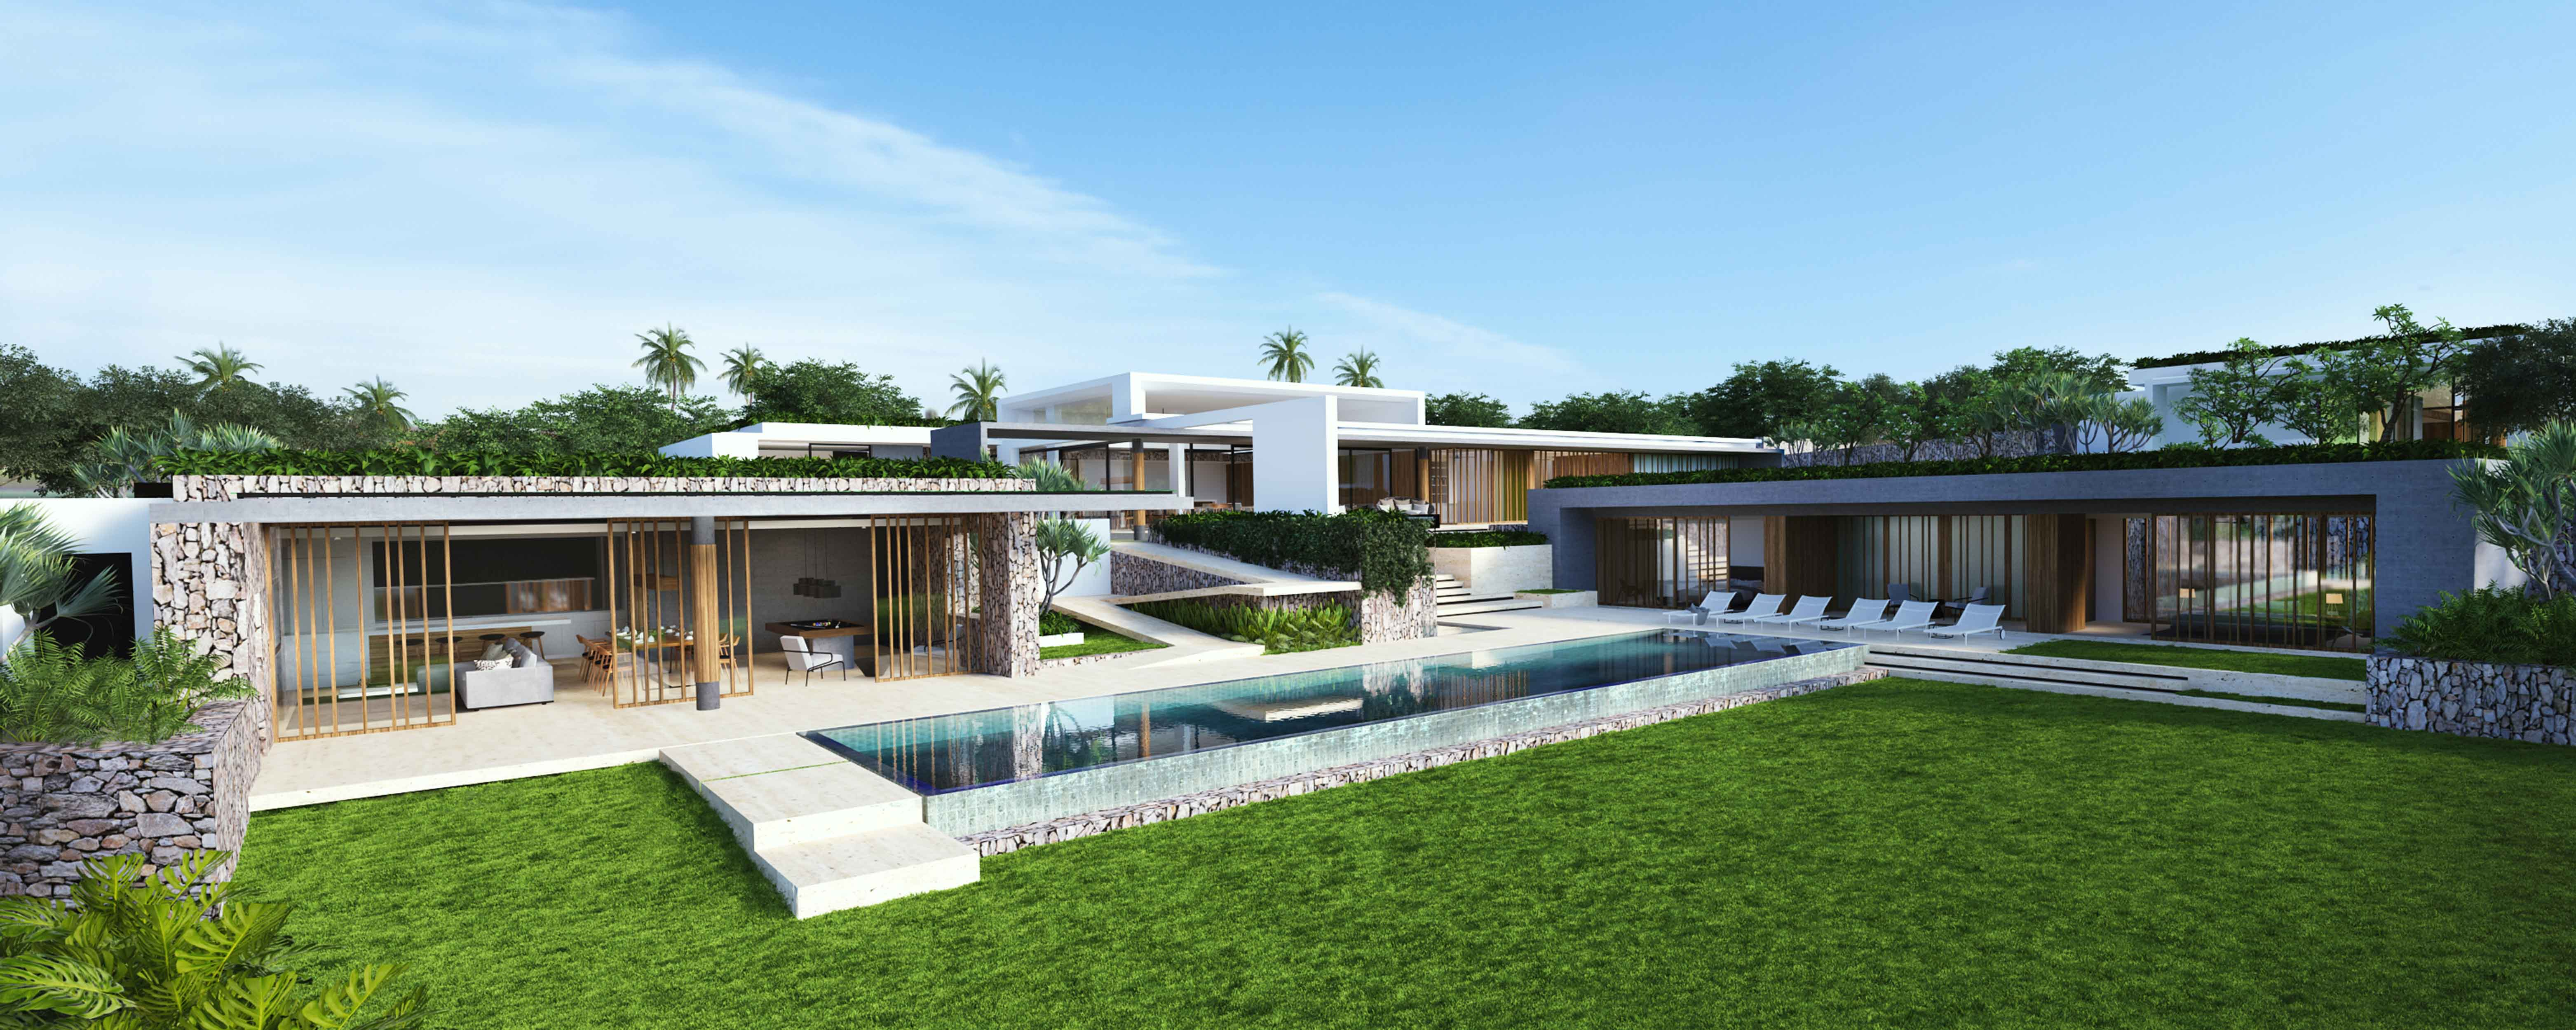 Projects Photo/Sunplay Lifestyle Bangsaray Thailand/sunplay-lifestyle-villa-c13